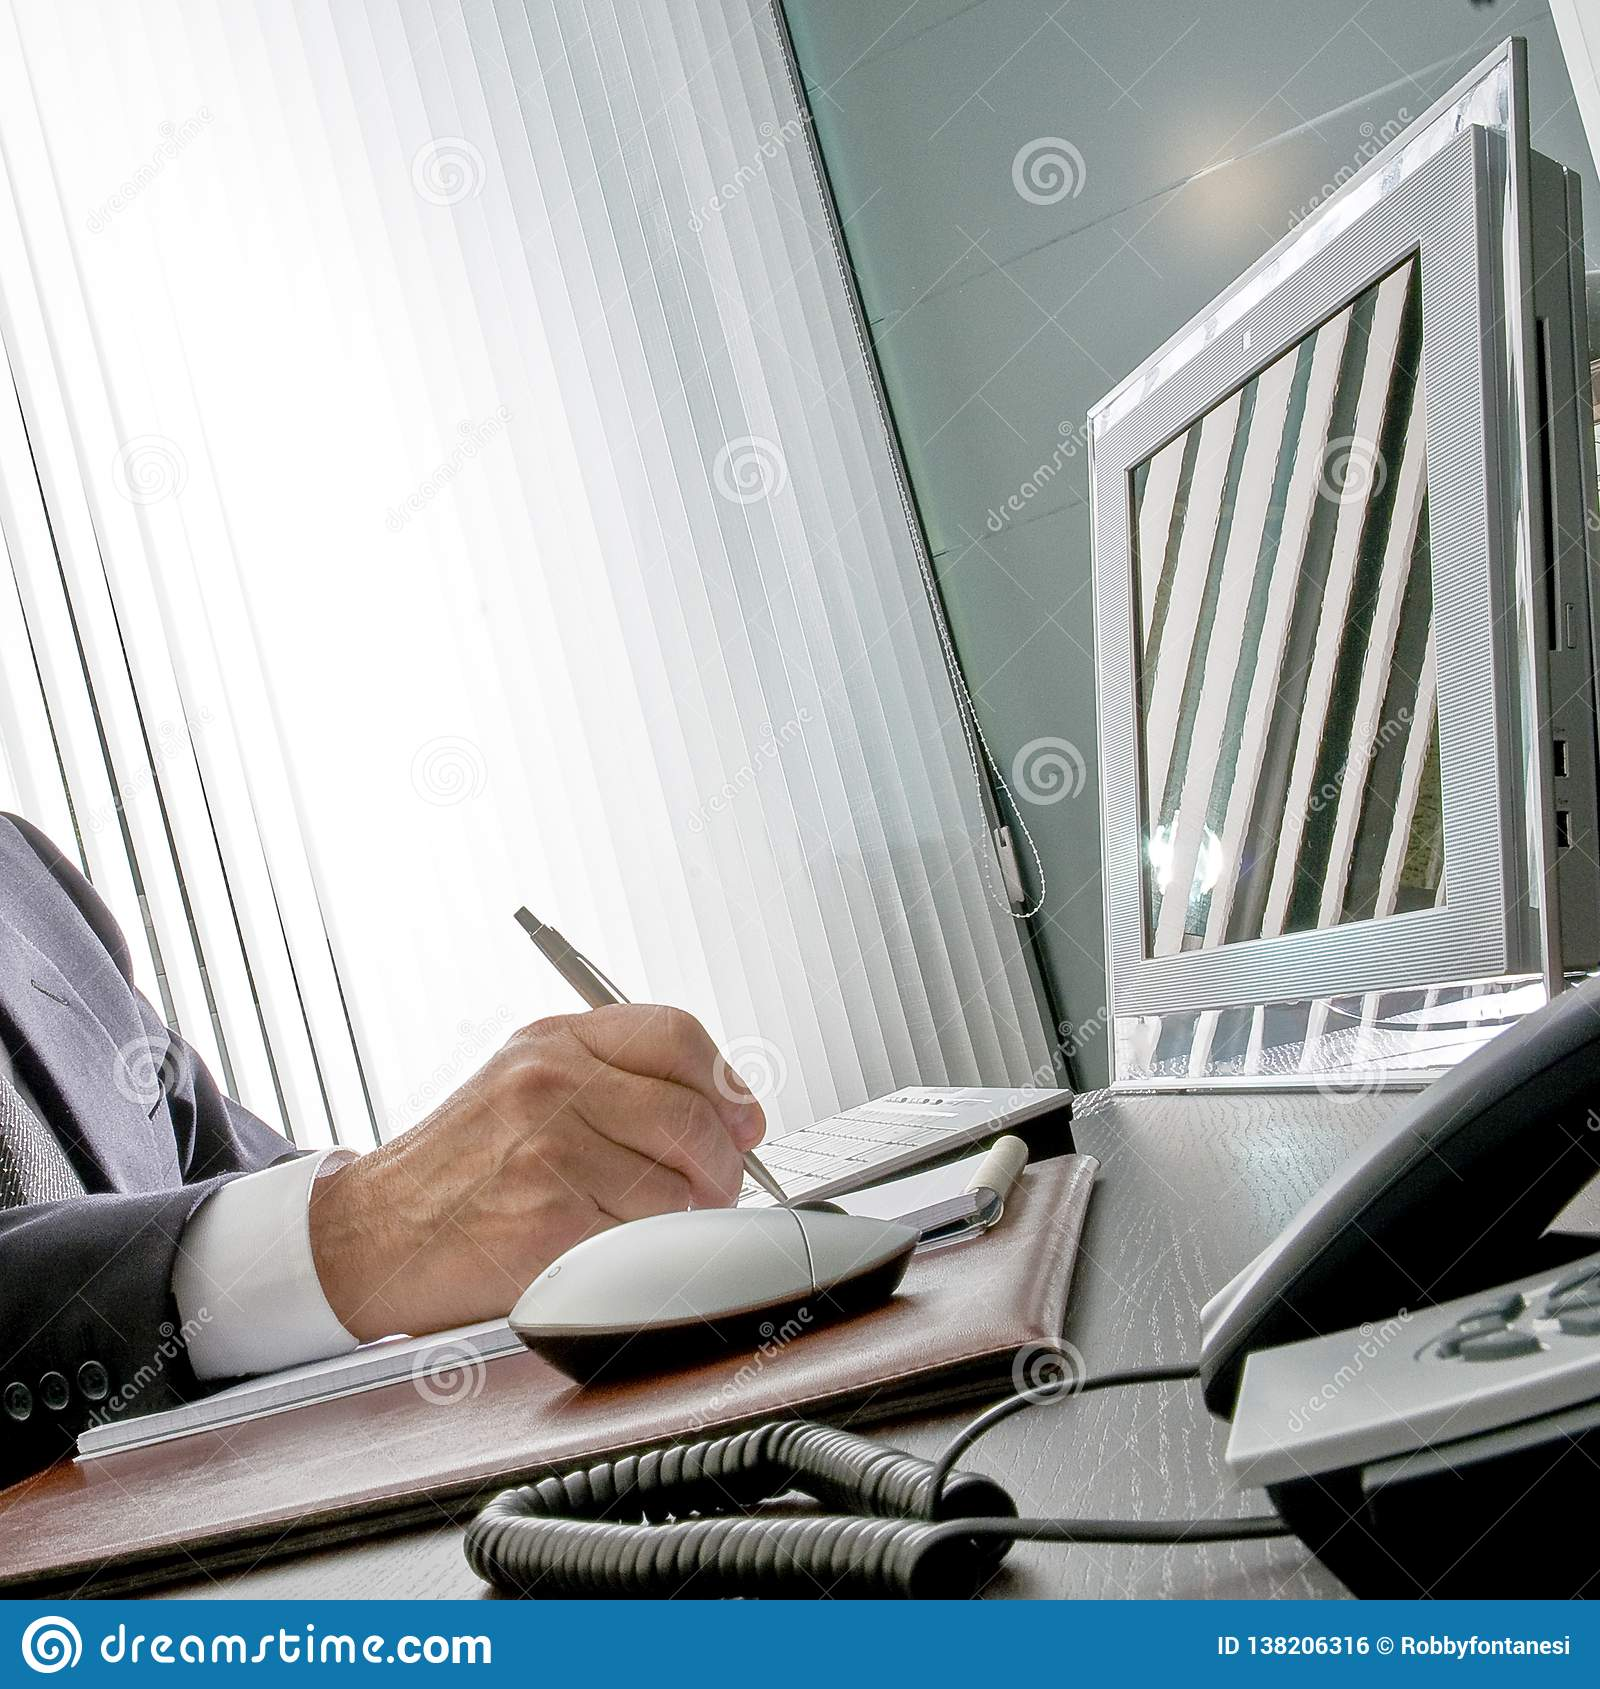 Manager at work. The expert hand of a businessman sitting at his desk, he holds the pen in front of his computer monitor that